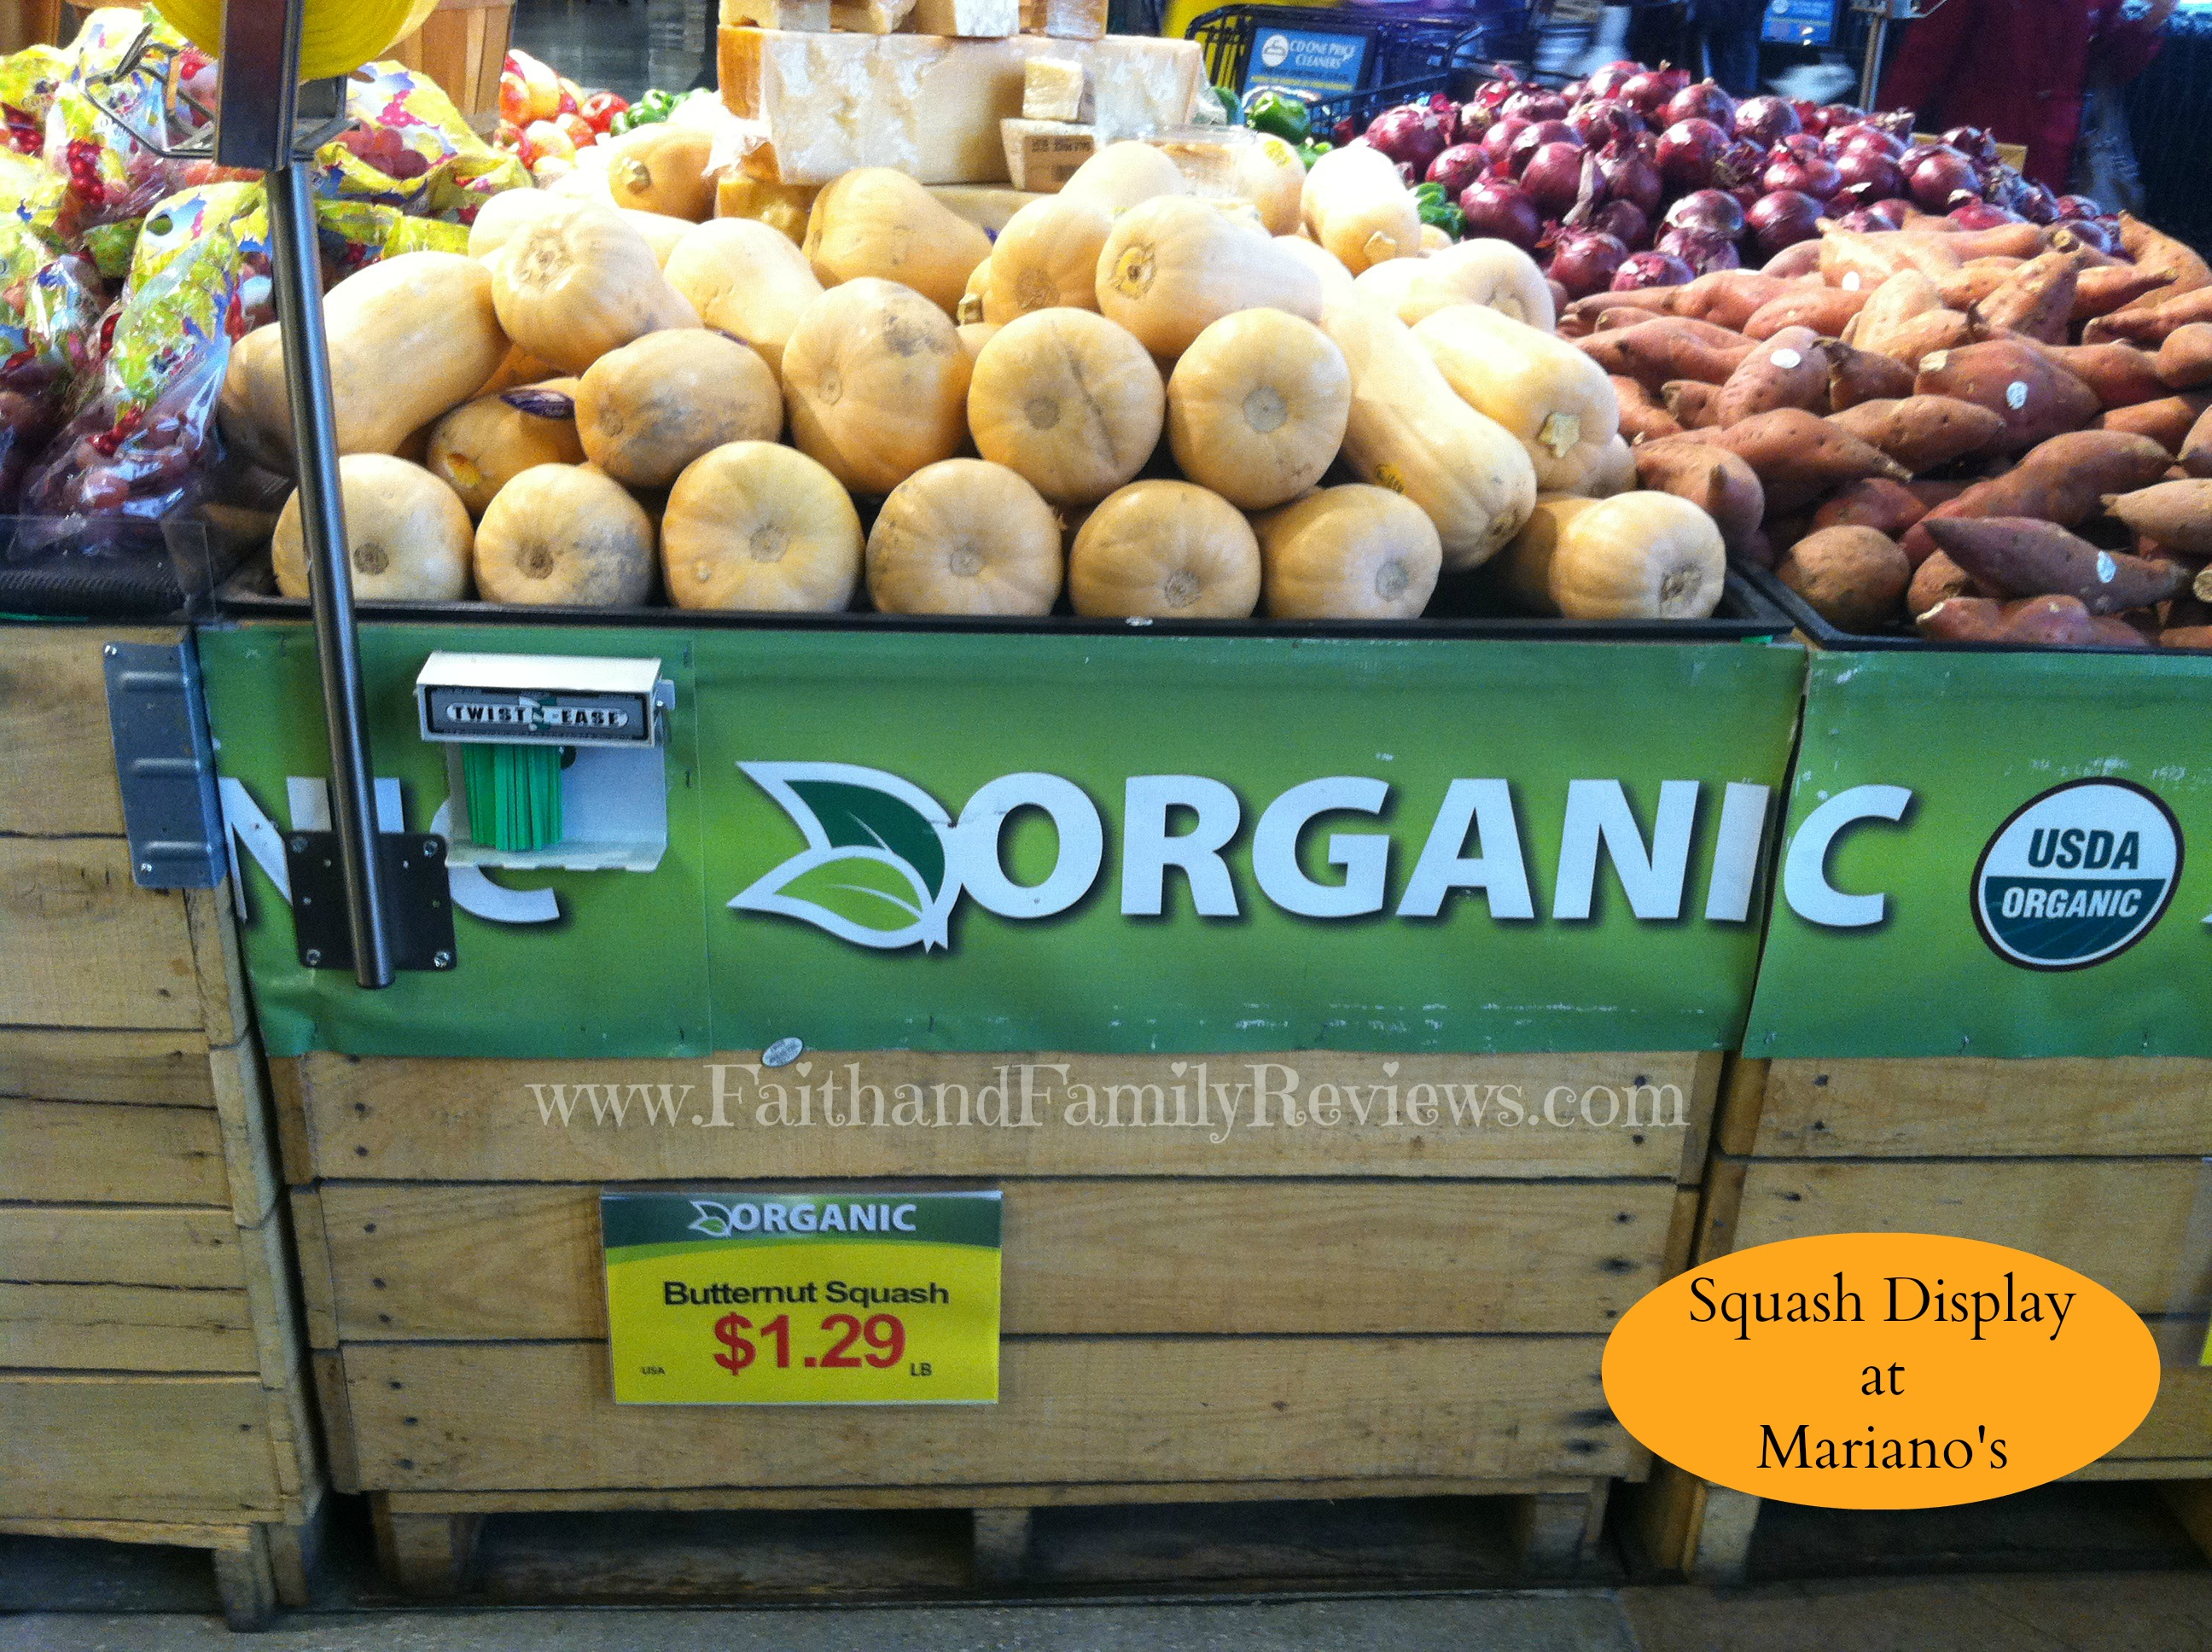 FFR #MyMarianos Squash Display